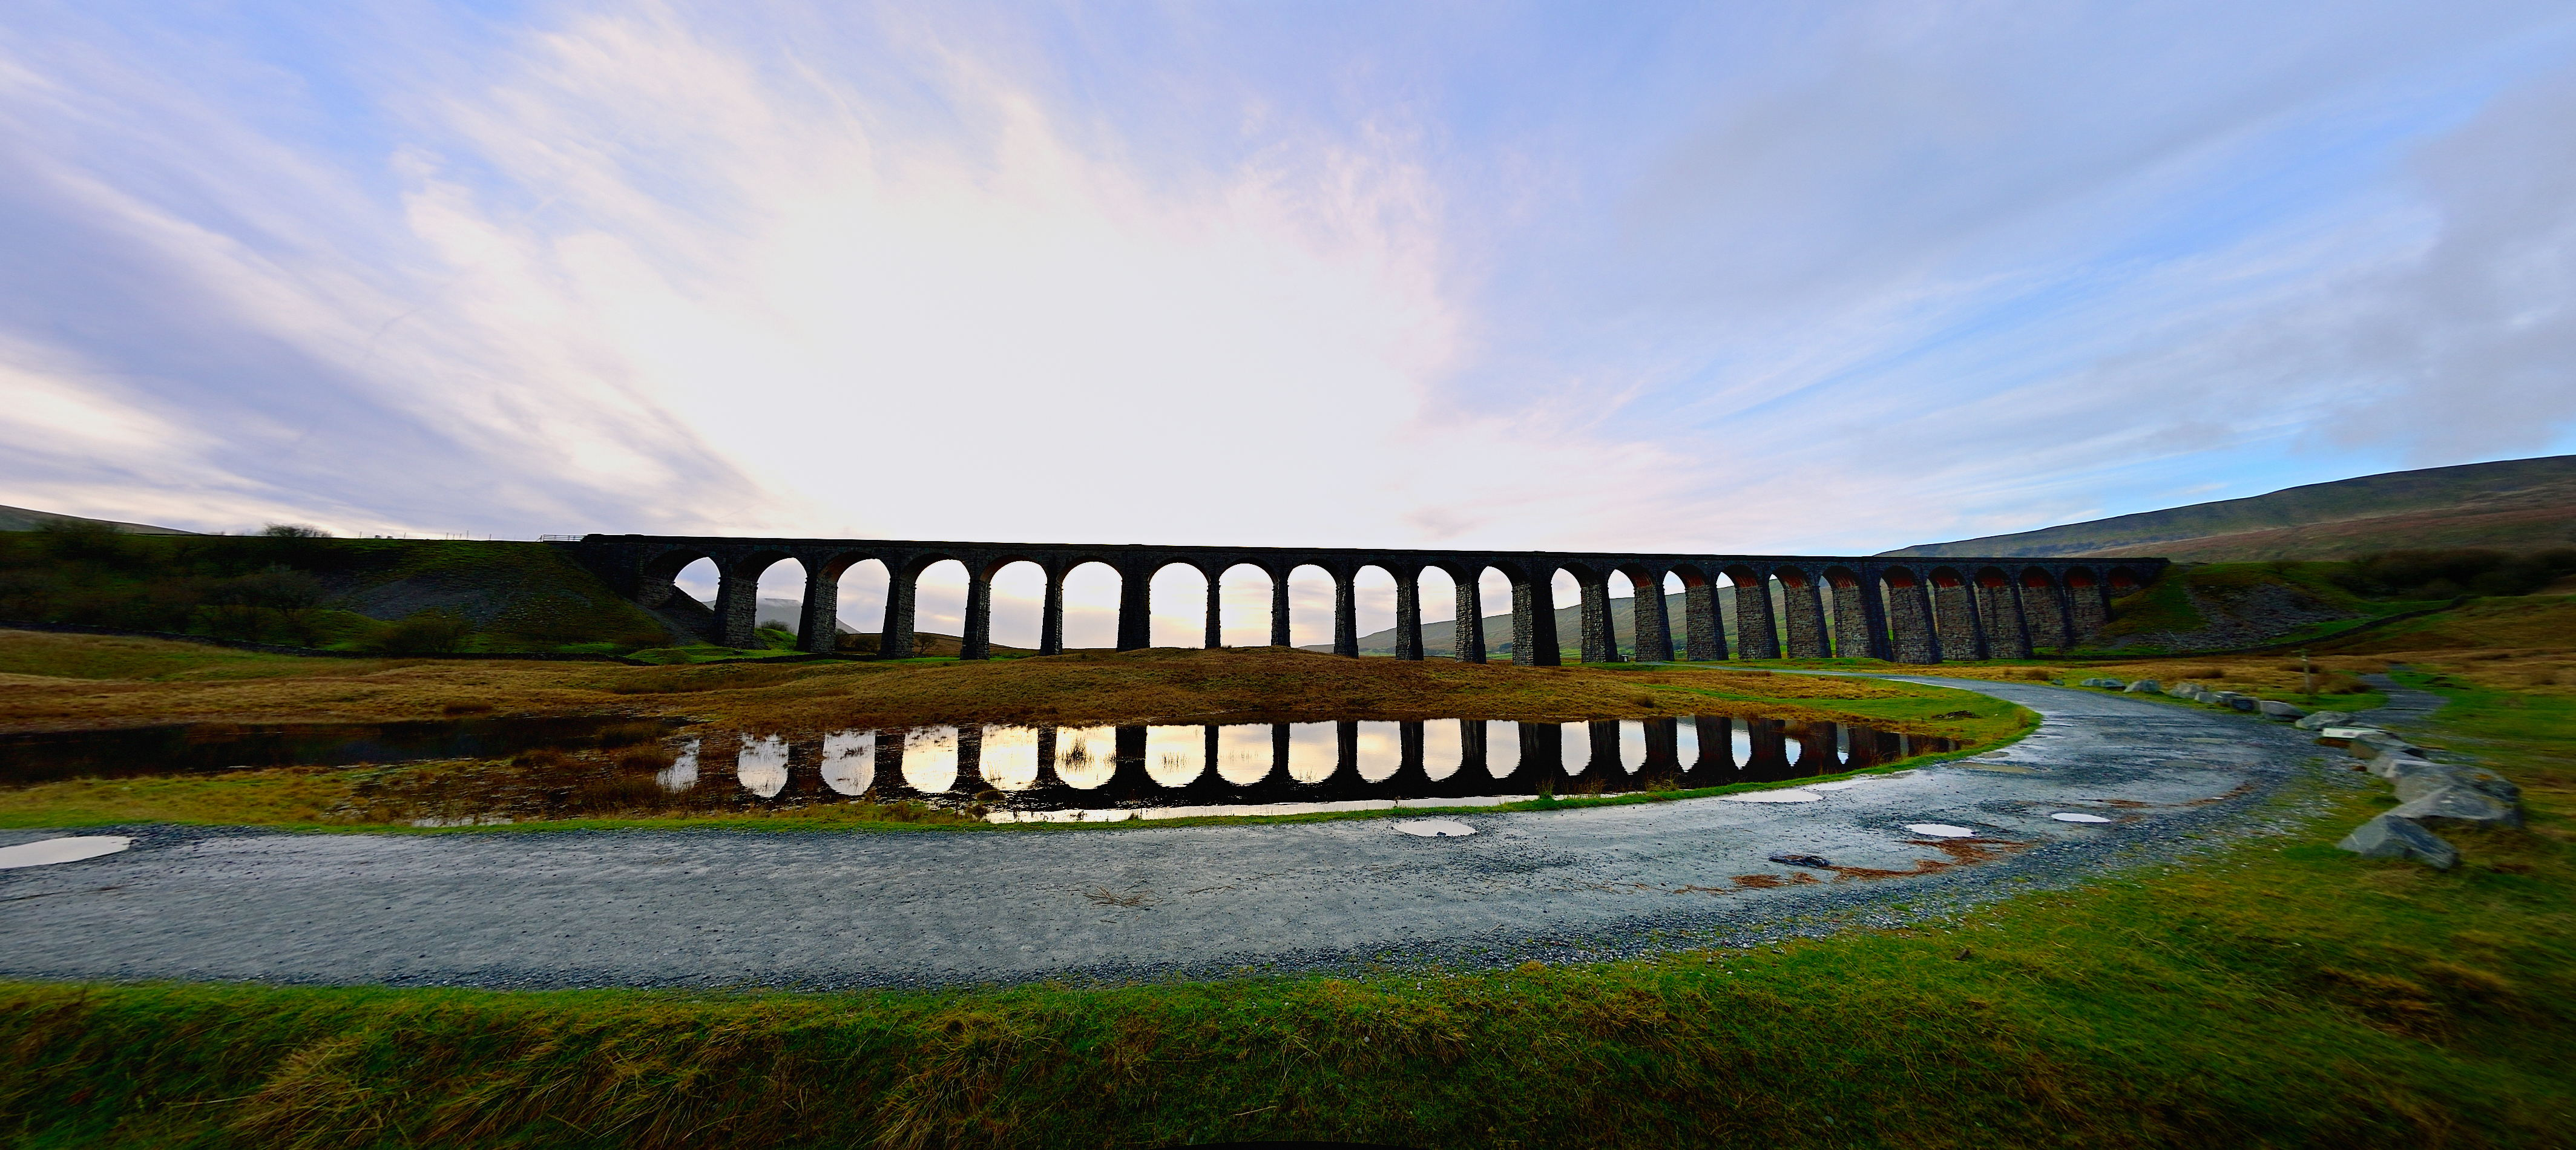 235235/365 Ribblehead reflections